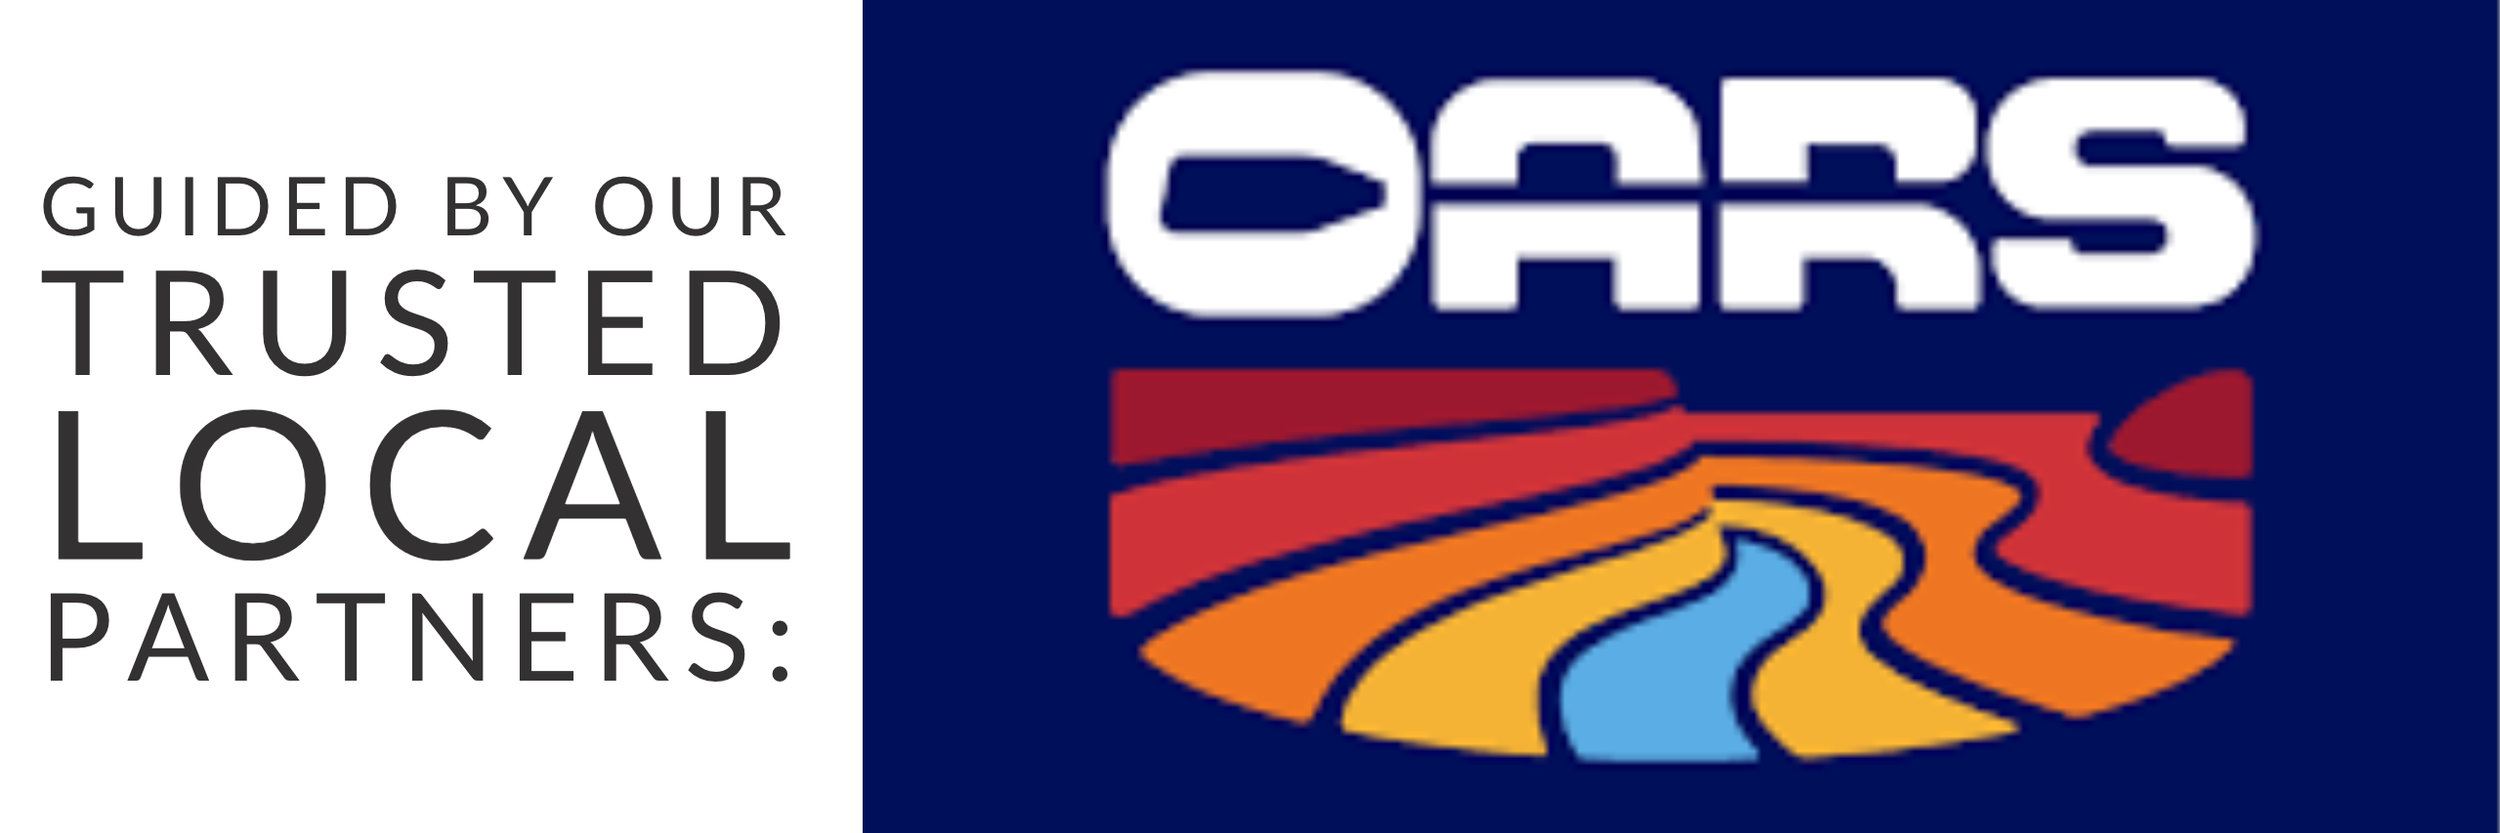 guided by our trusted local partners: OARS